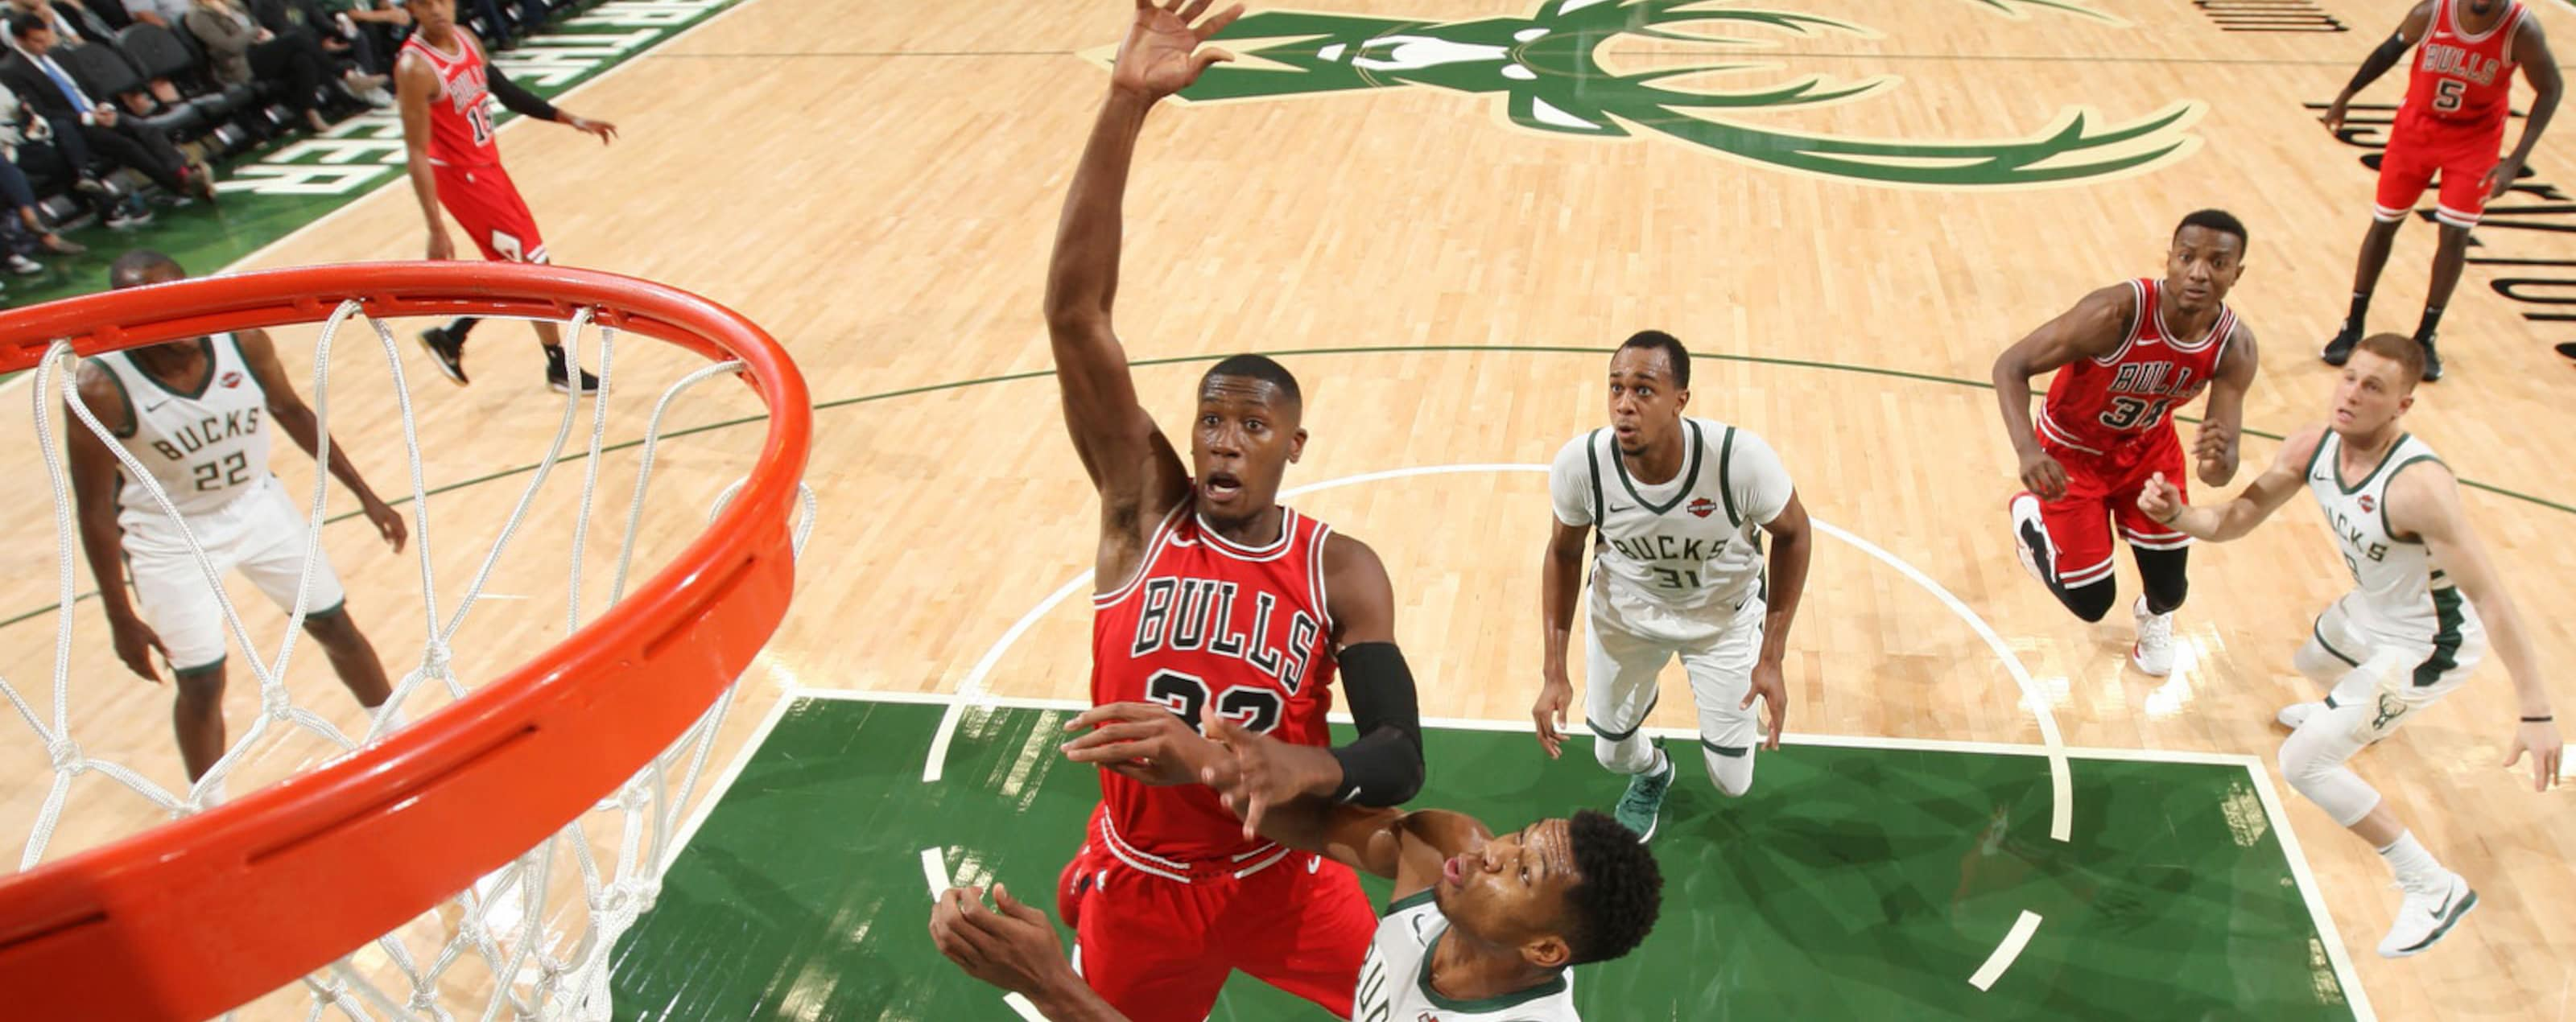 Kris Dunn #32 of the Chicago Bulls shoots the ball against the Milwaukee Bucks during a pre-season game on October 3, 2018 at Fiserv Forum, in Milwaukee, Wisconsin.